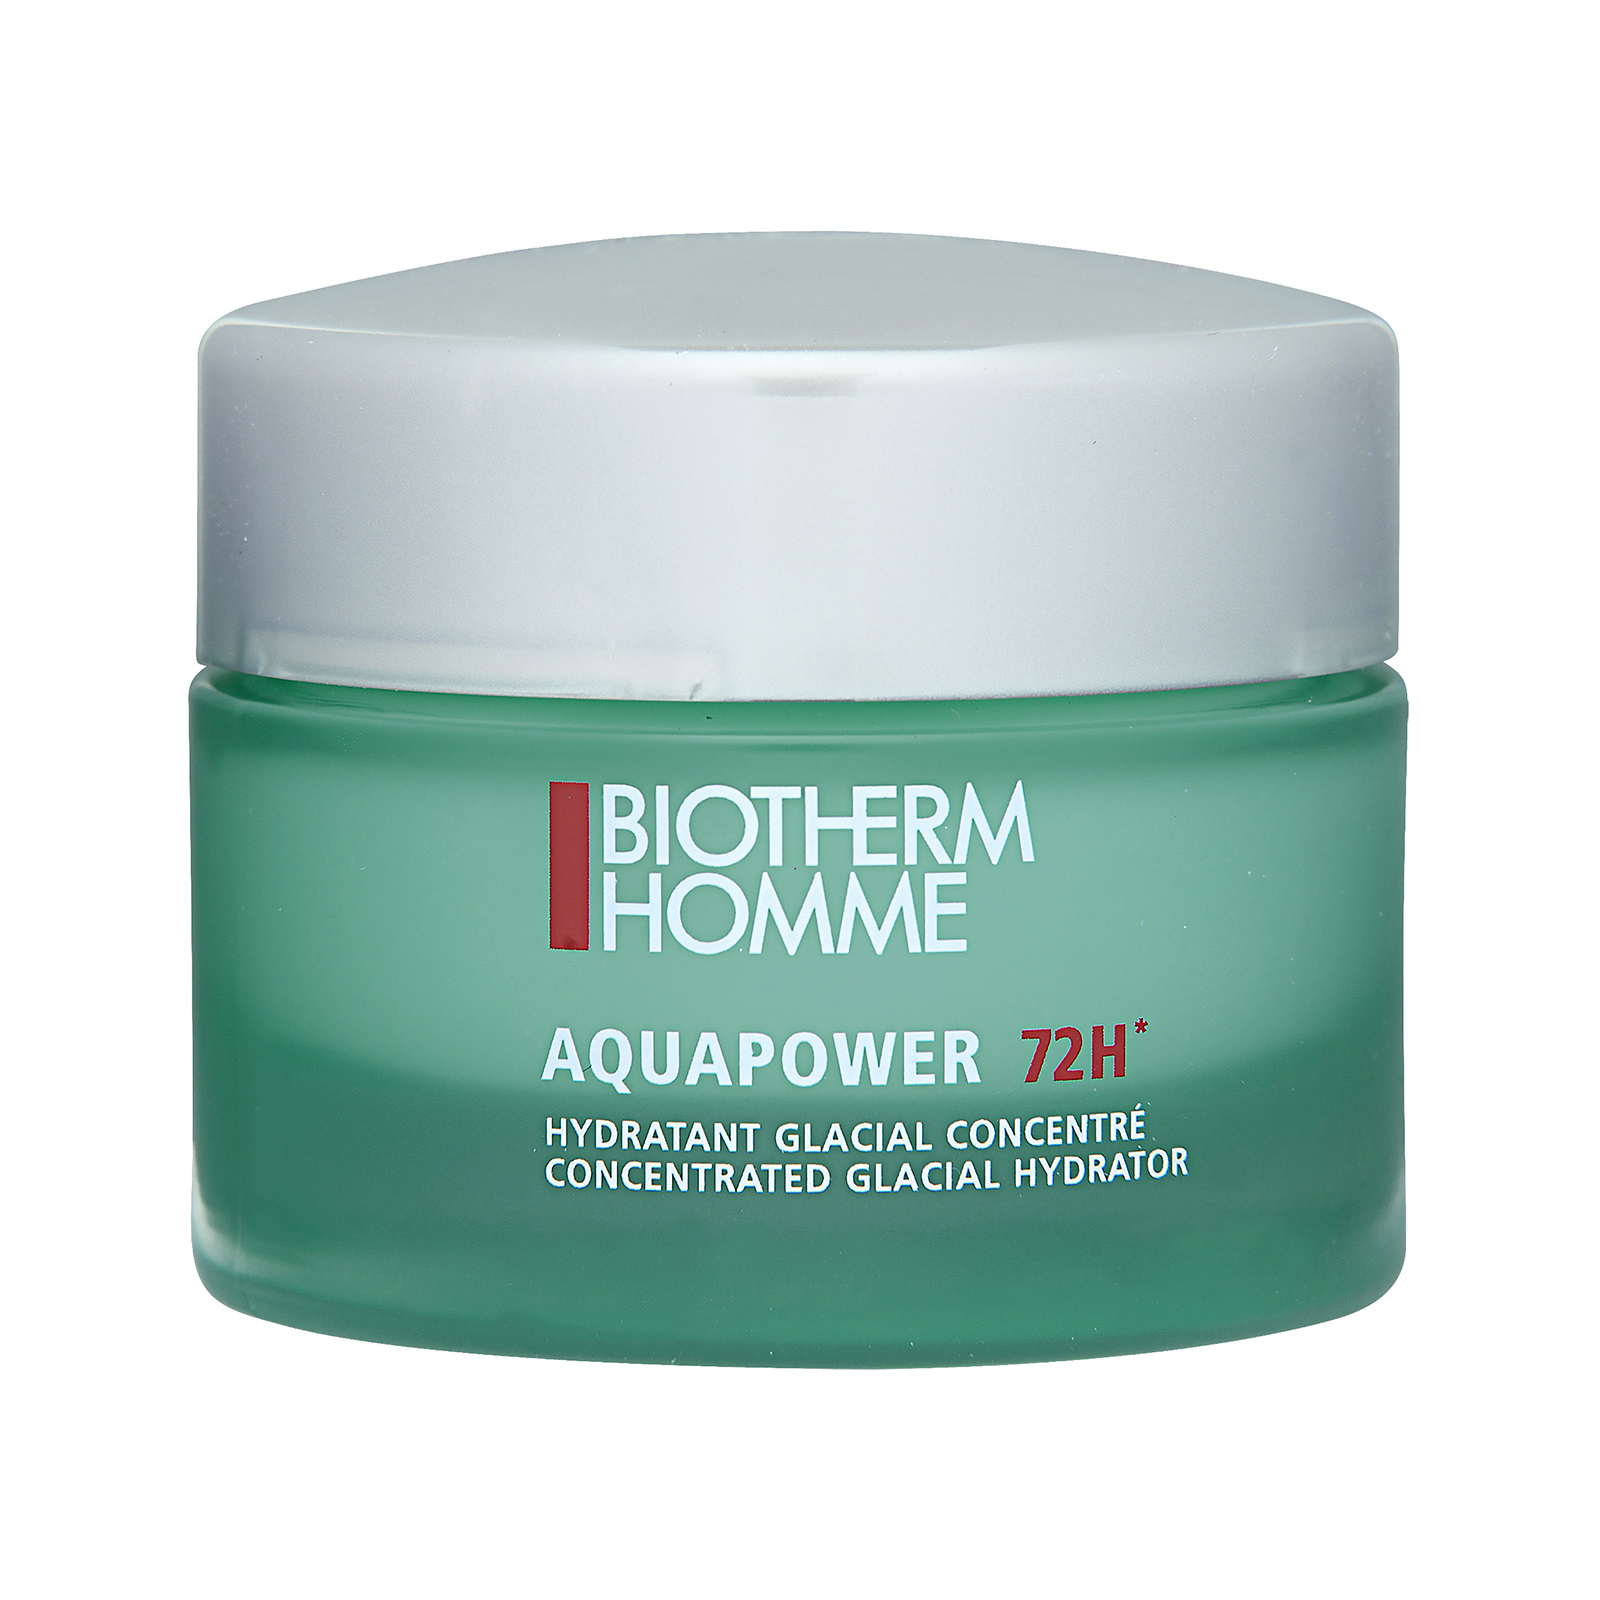 Biotherm Homme AquaPower 72 H Concentrated Glacial Hydrator 1.69oz, 50ml